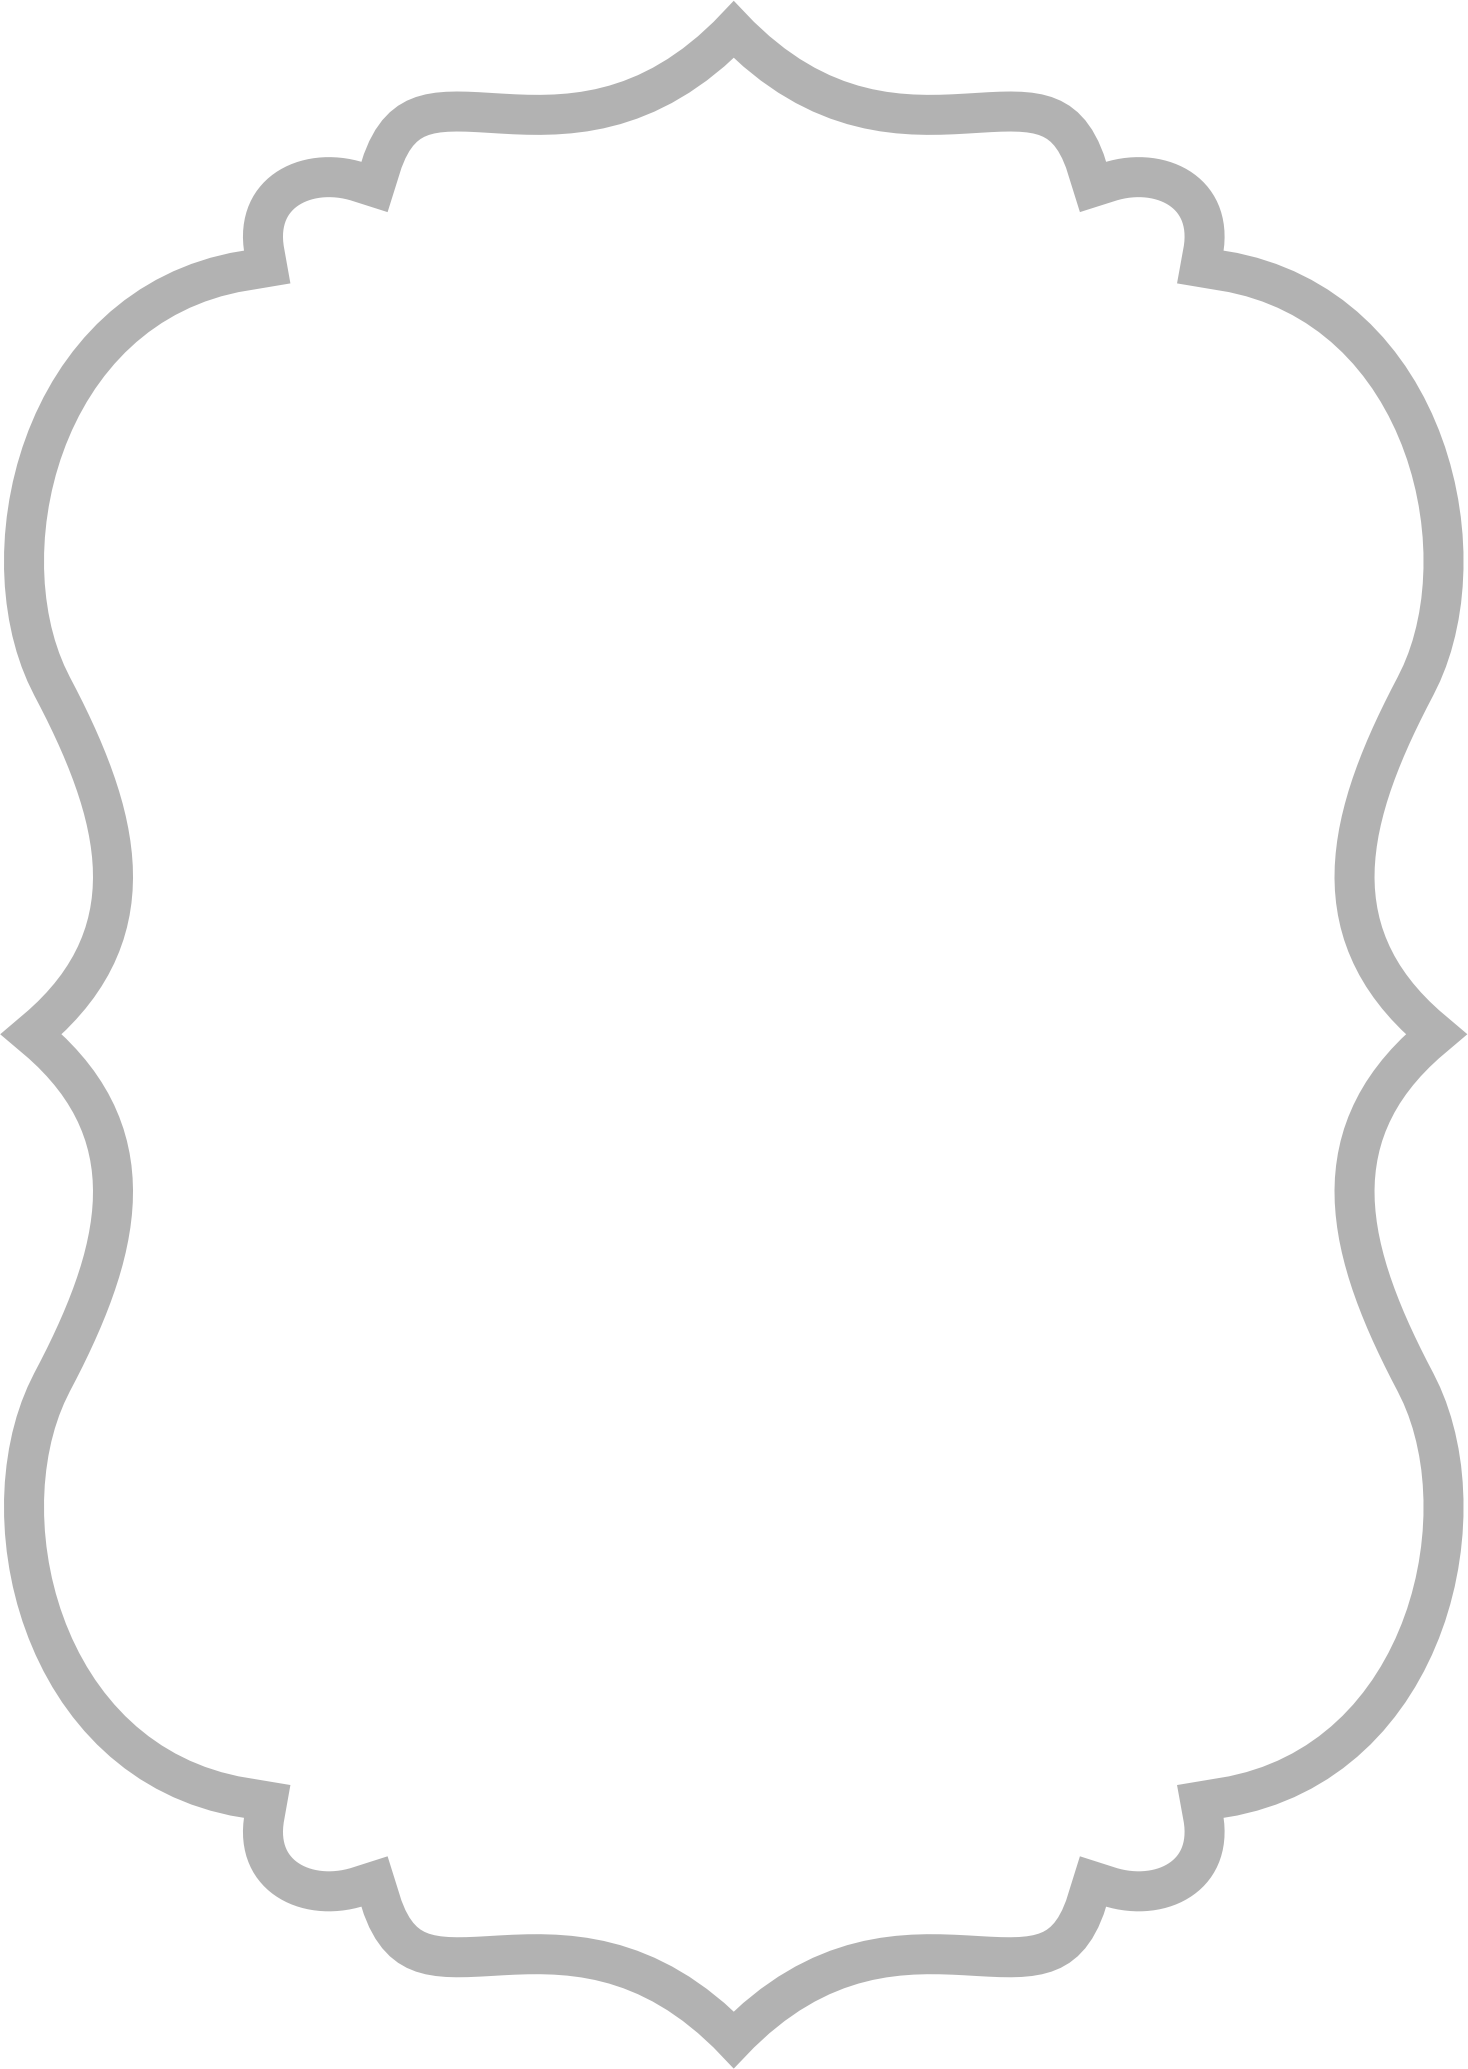 Invitation frame png.  image transparent shape